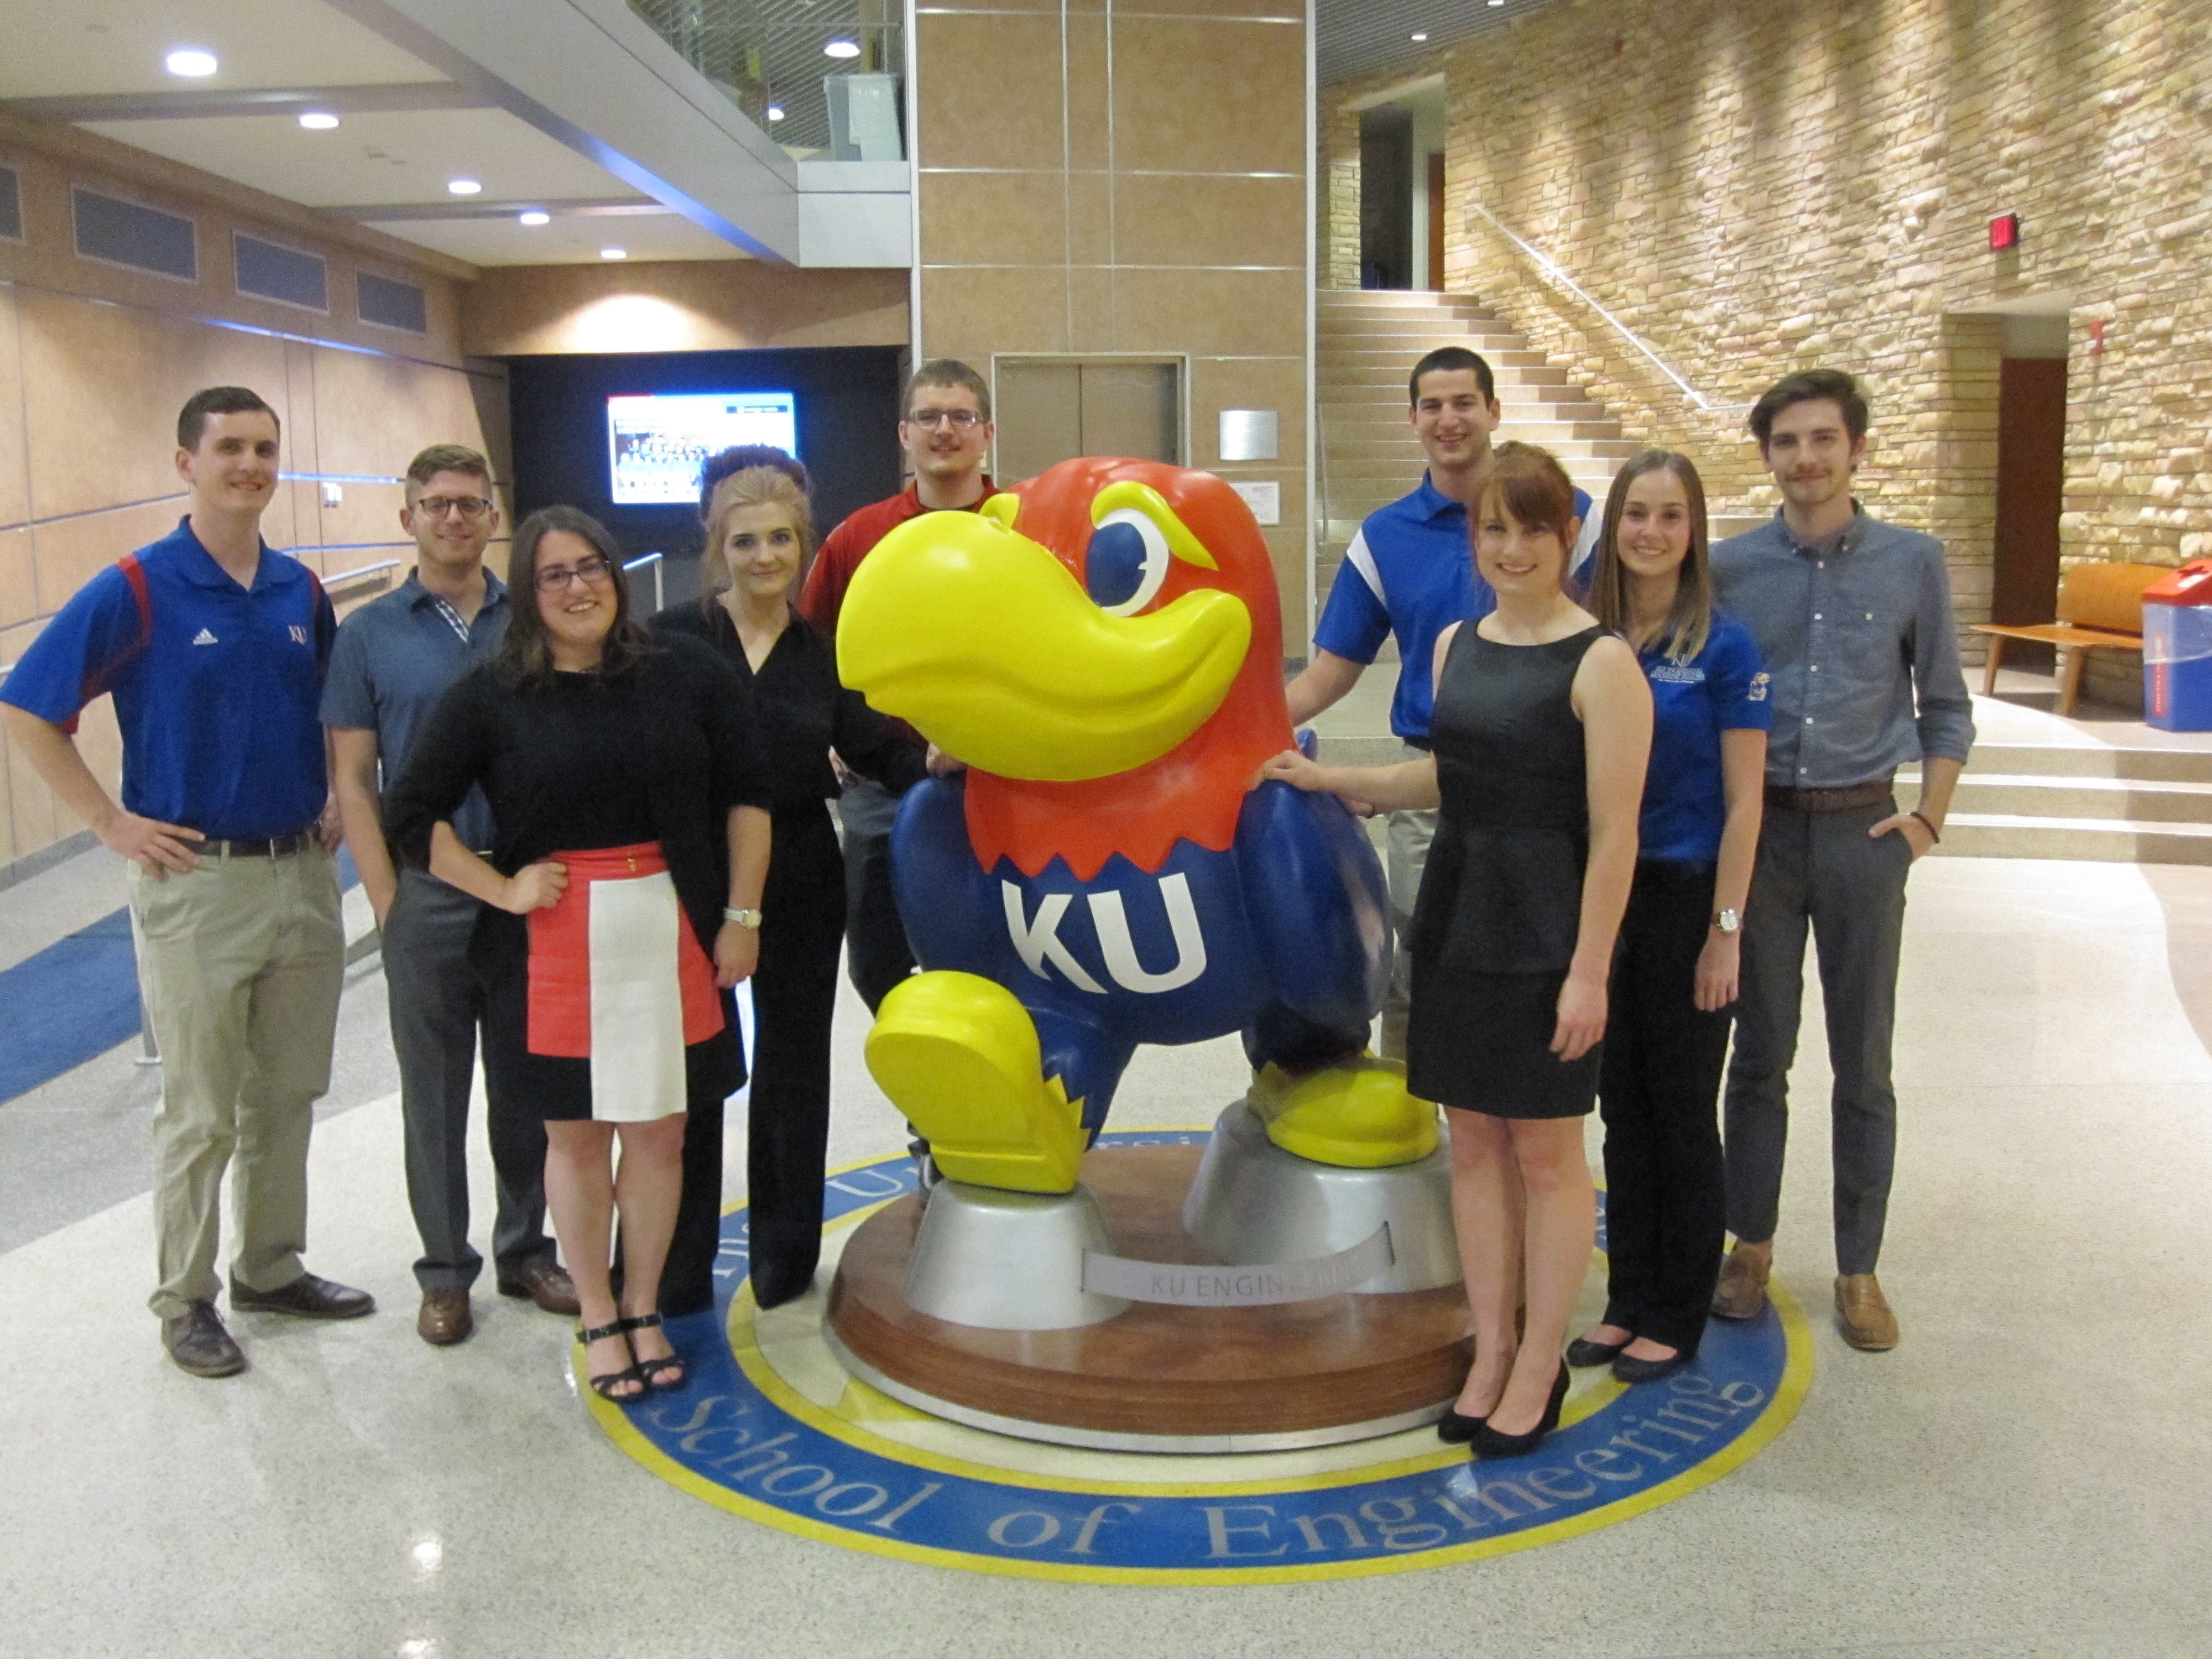 """These KU aerospace engineering students, known as the """"Spacehawks,"""" designed a next generation space station as part of a worldwide contest.  Their design has made it to the final round and soon, NASA scientists will judge whether the KU concept gets 1st, 2nd or 3rd place in the contest."""